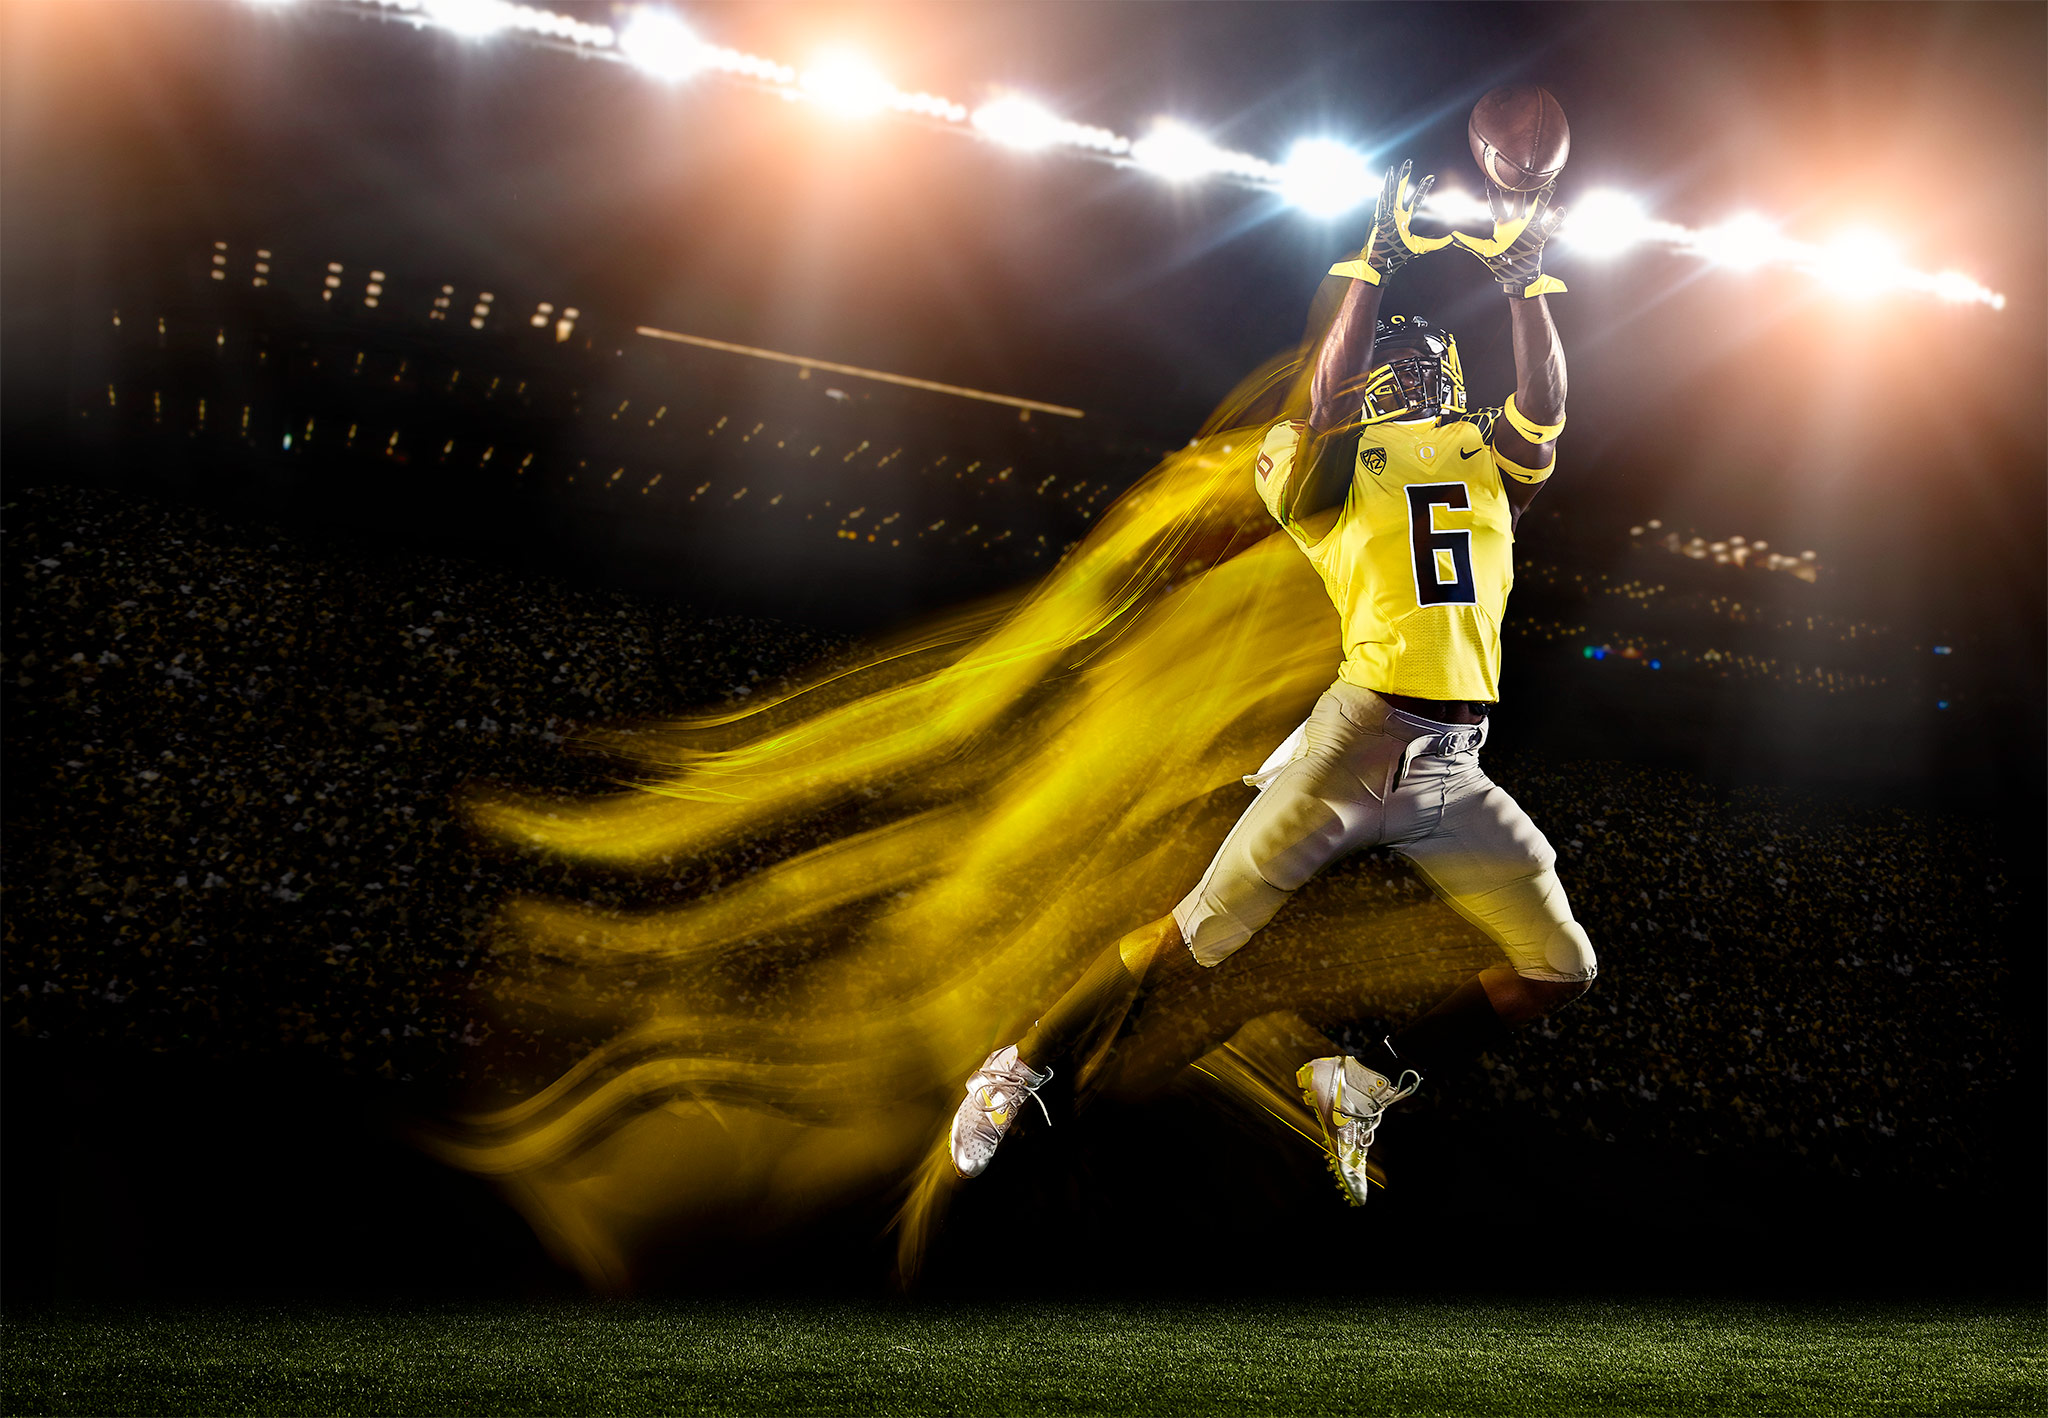 DeAnthony Thomas elevates for a Reception | Zach Ancell Photography